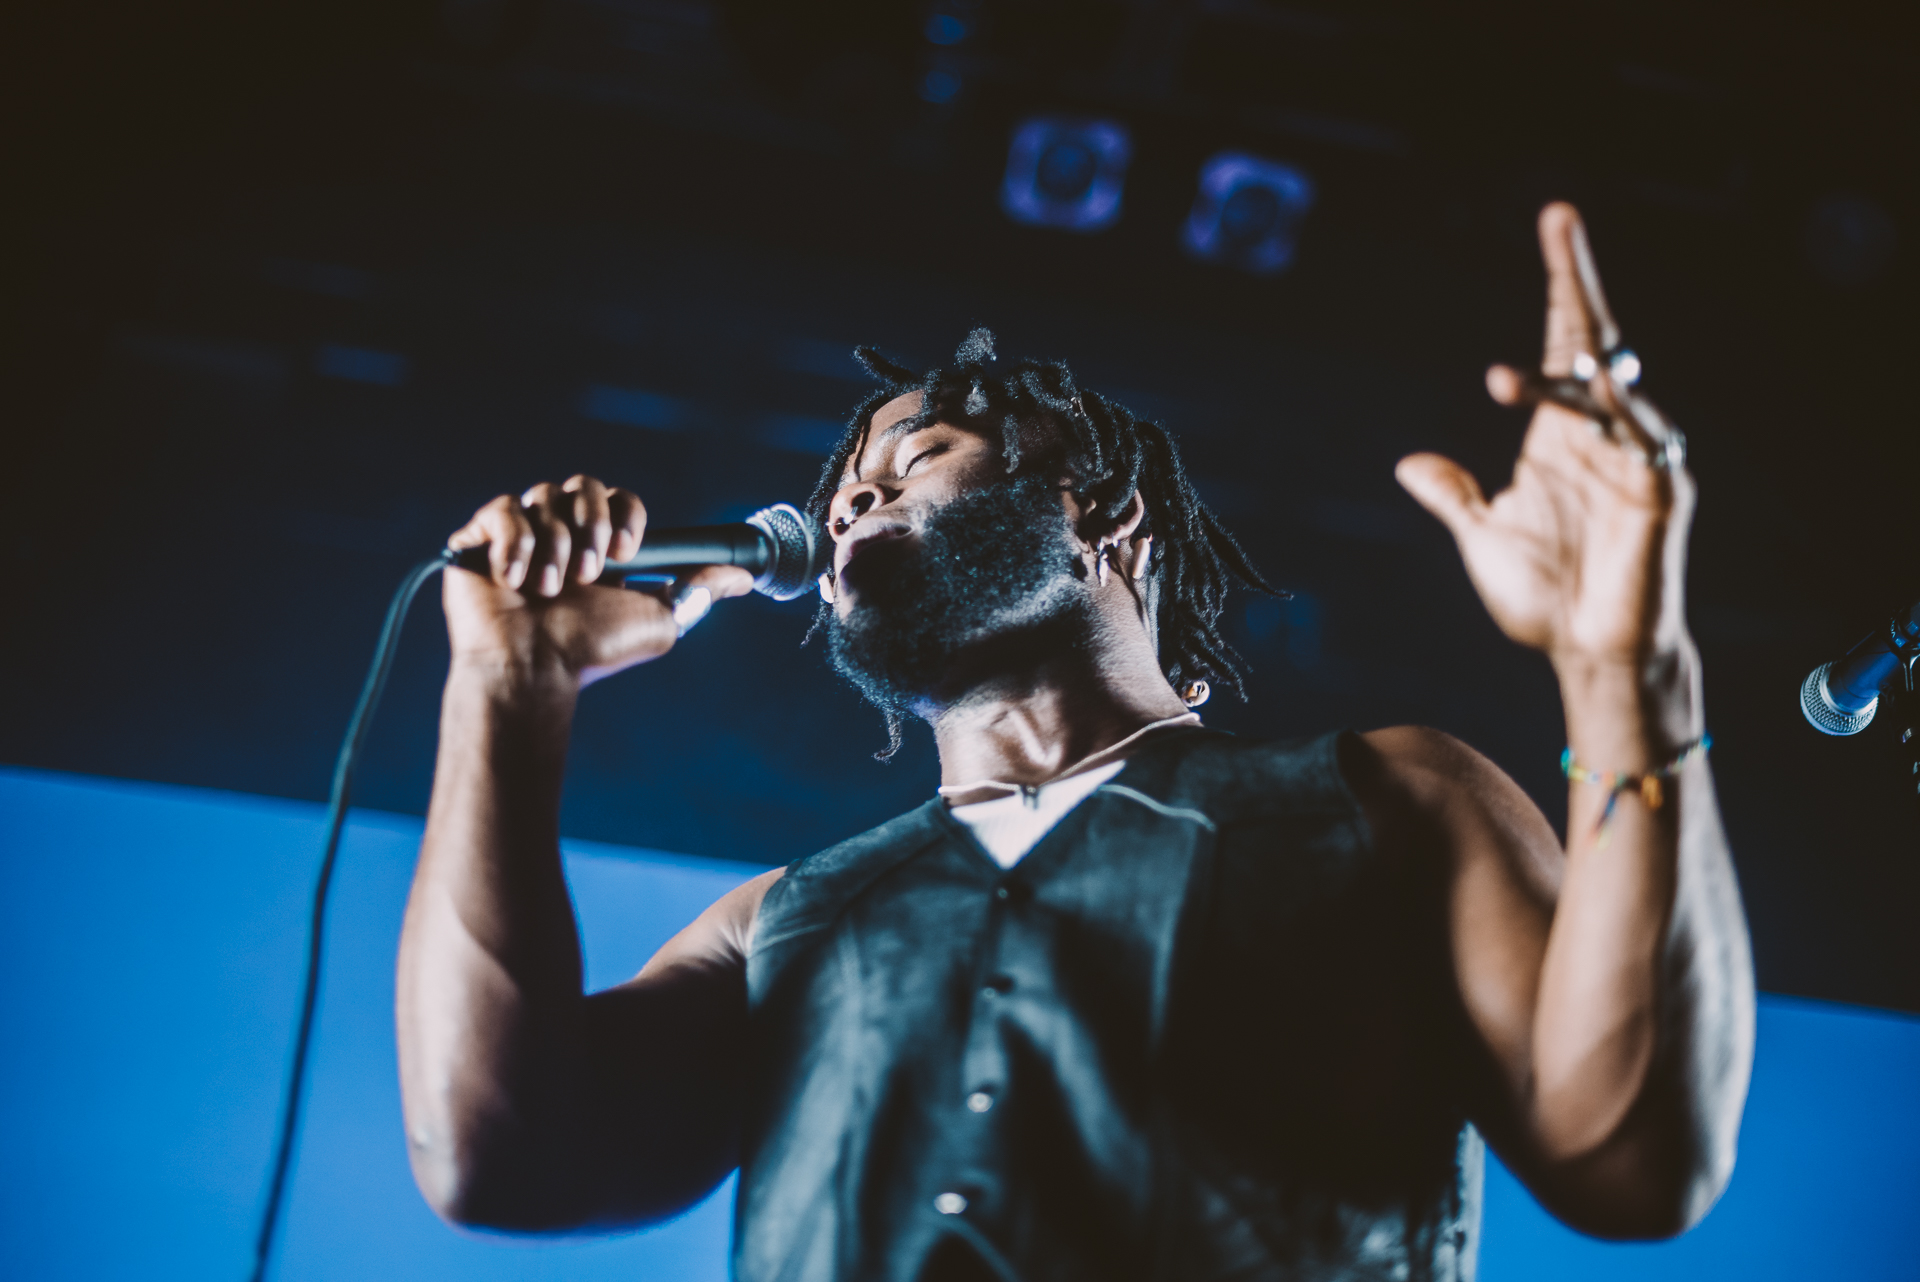 1_Young_Fathers-VENUE-Timothy_Nguyen-20181117 (7 of 23).jpg